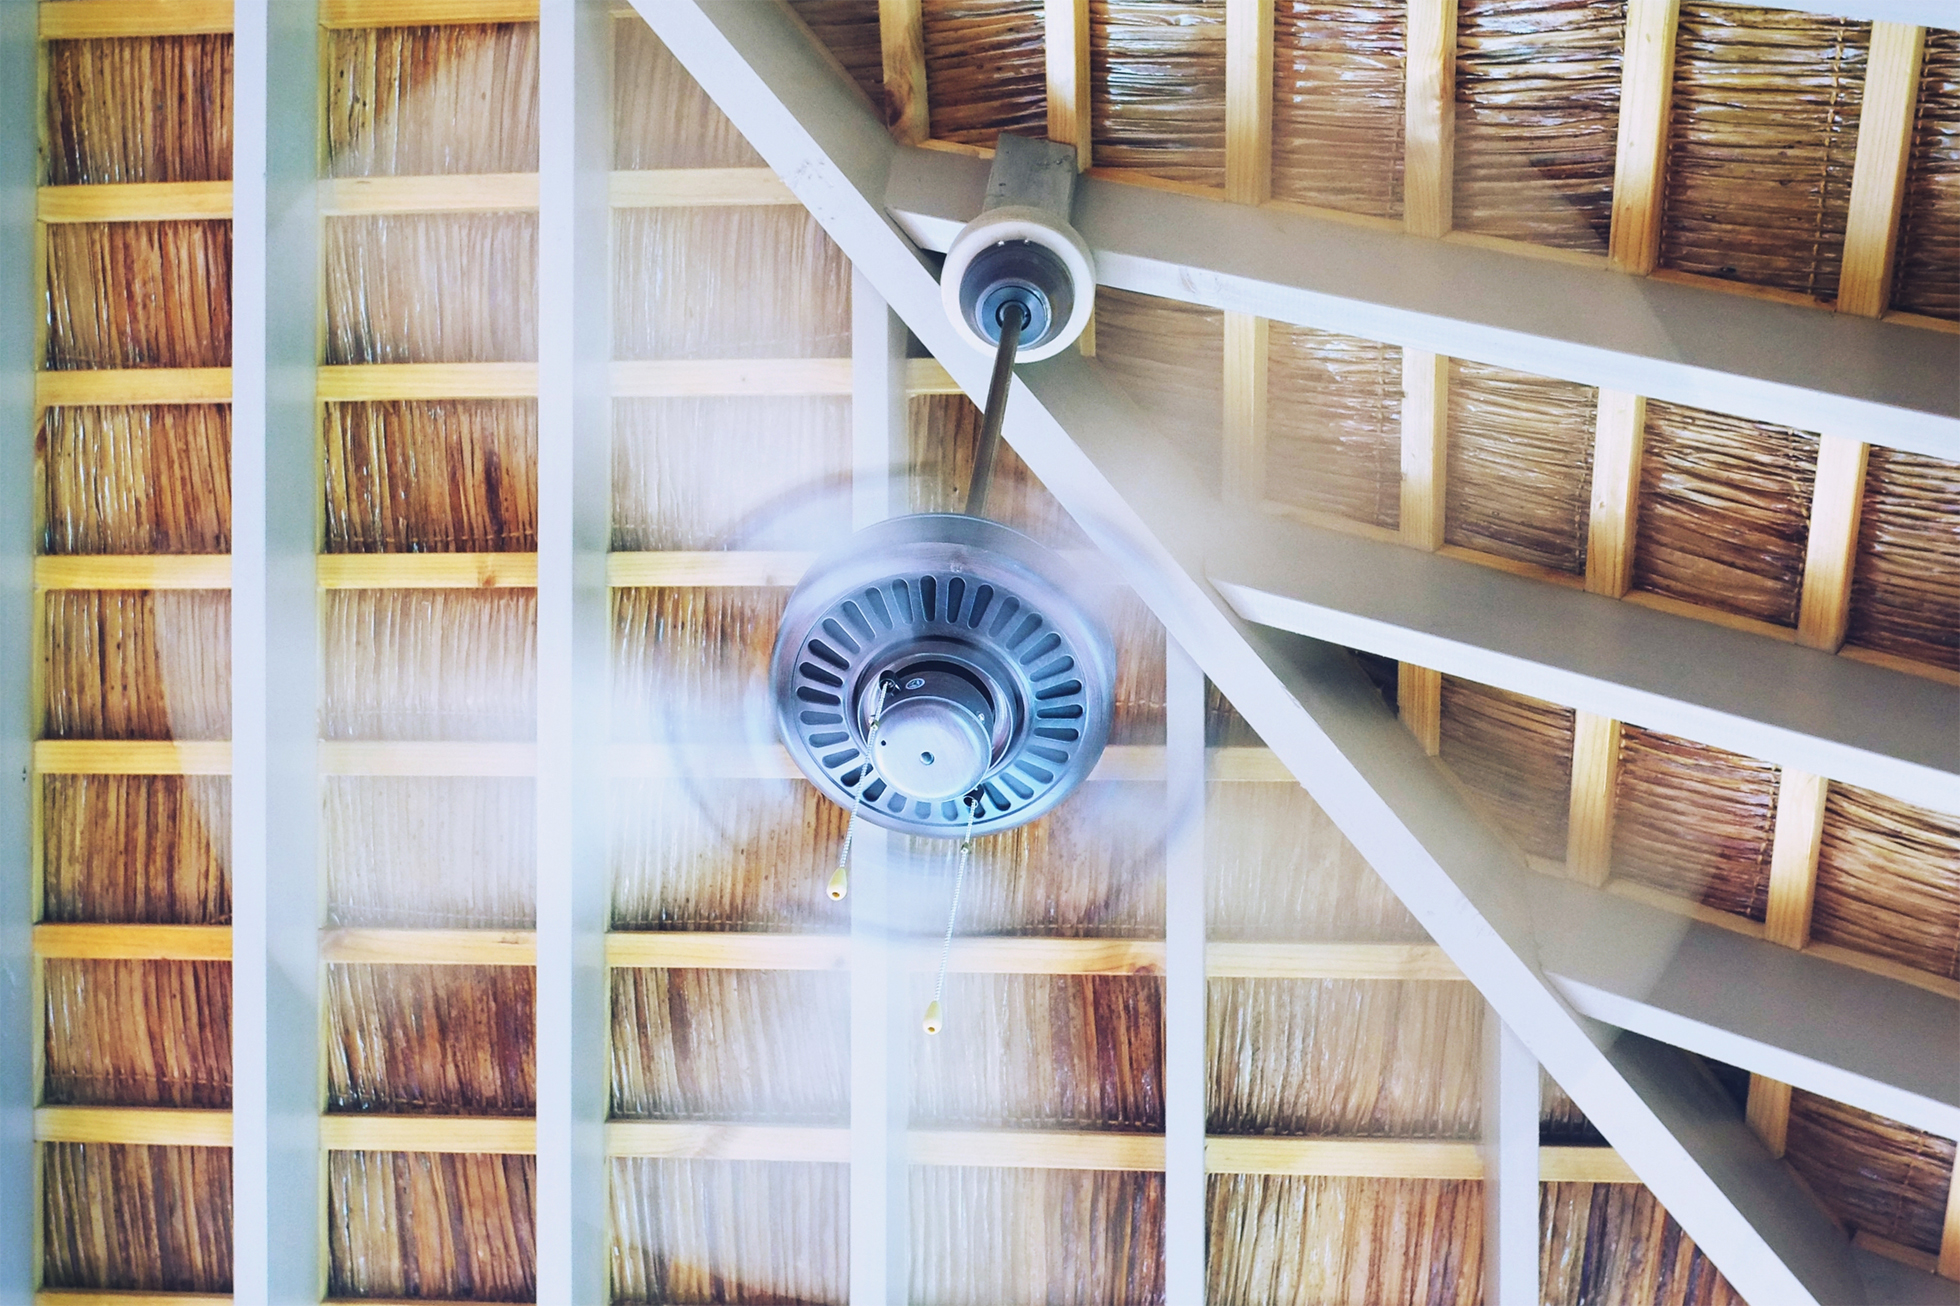 Ceiling fan spinning in a house